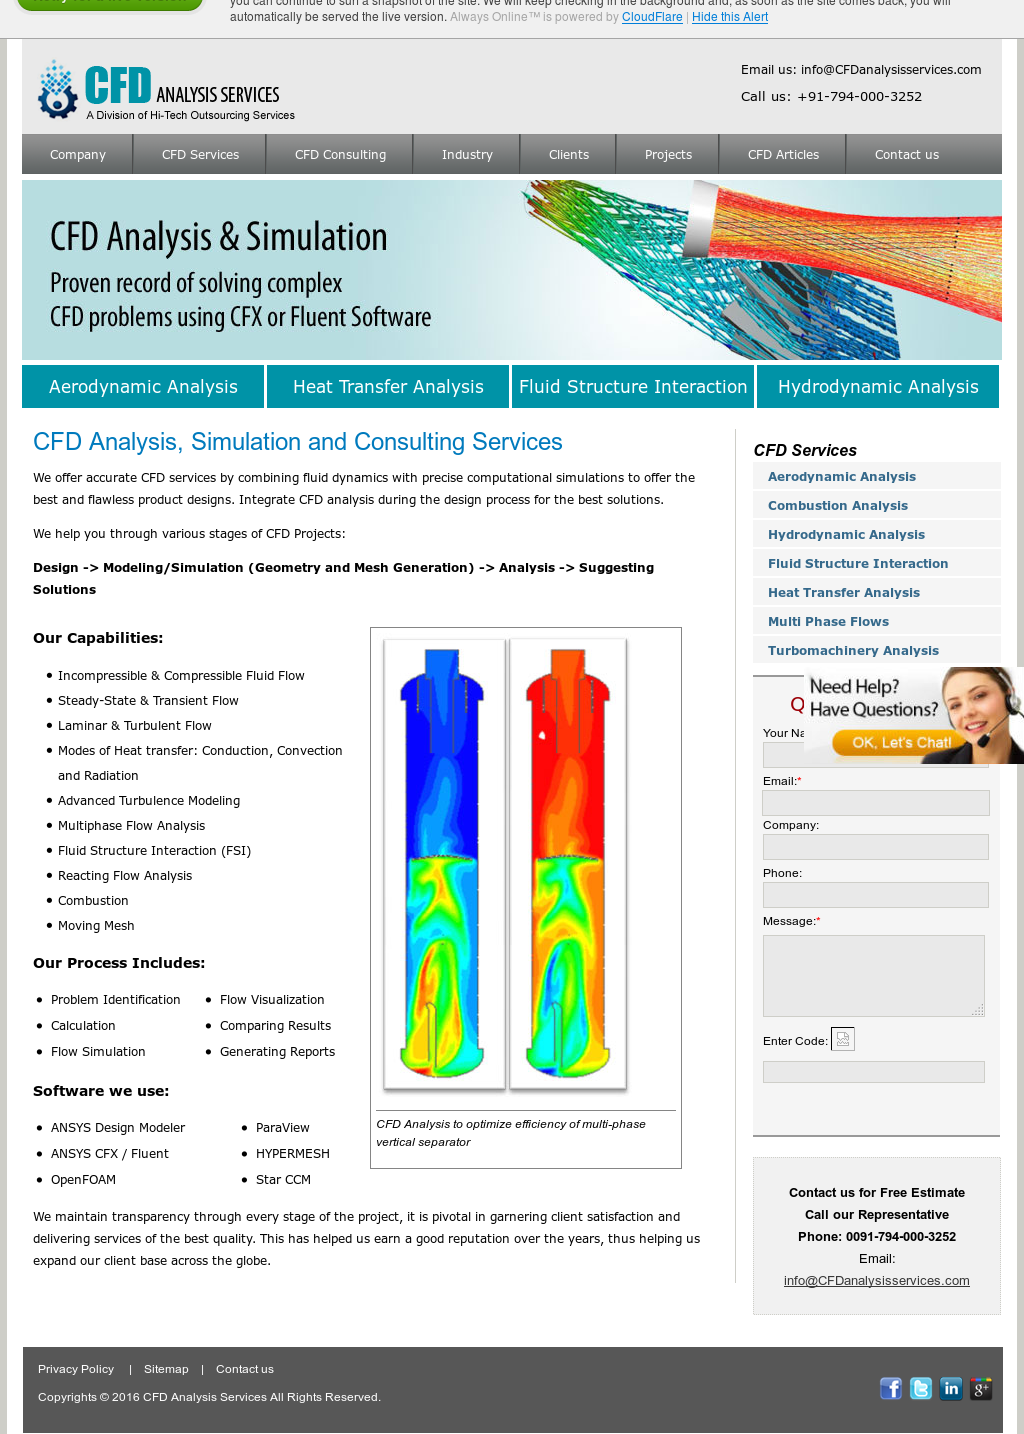 Cfd Analysis Services Competitors, Revenue and Employees